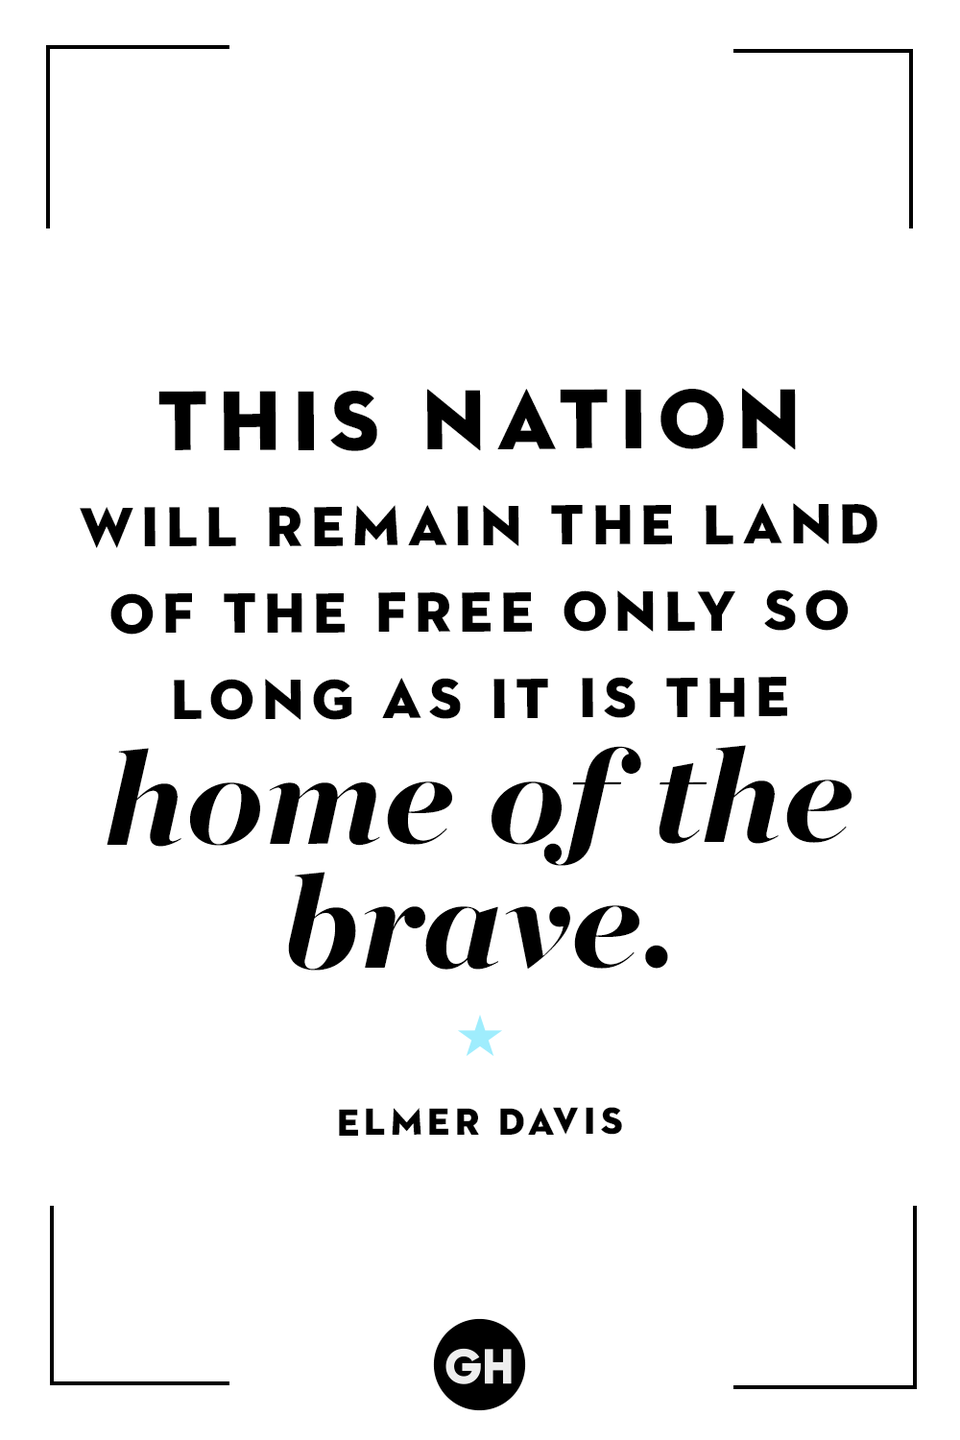 <p>This nation will remain the land of the free only so long as it is the home of the brave.</p>